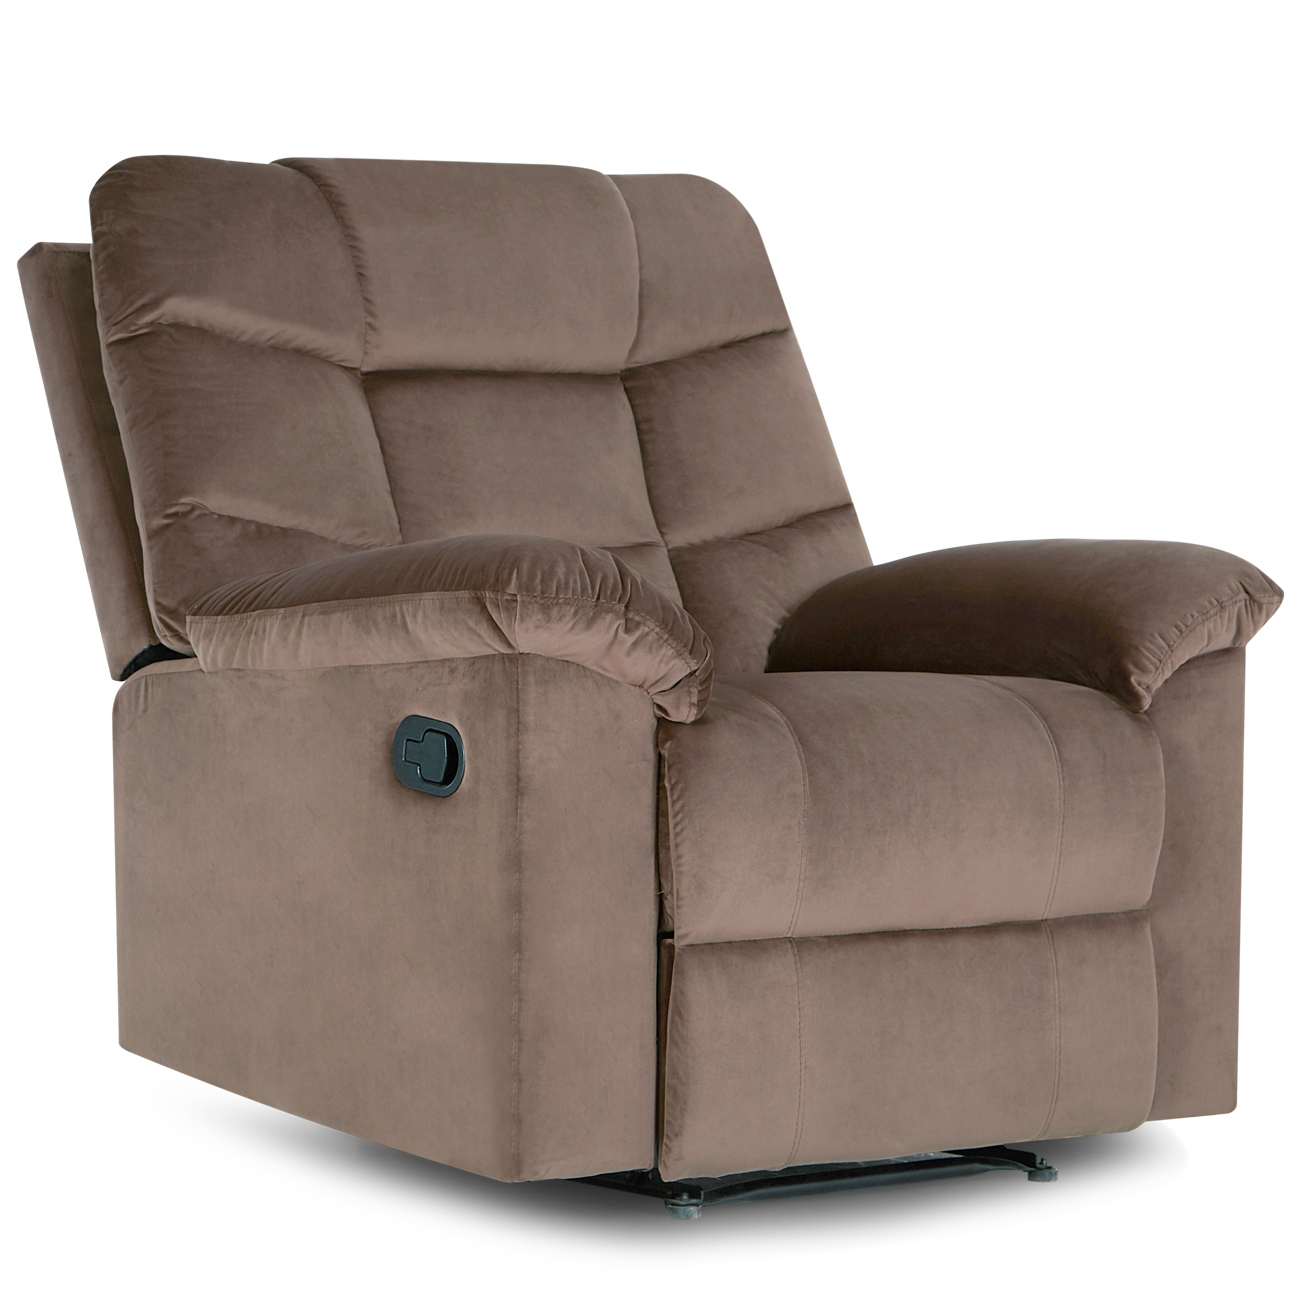 Microfiber recliner chair brown